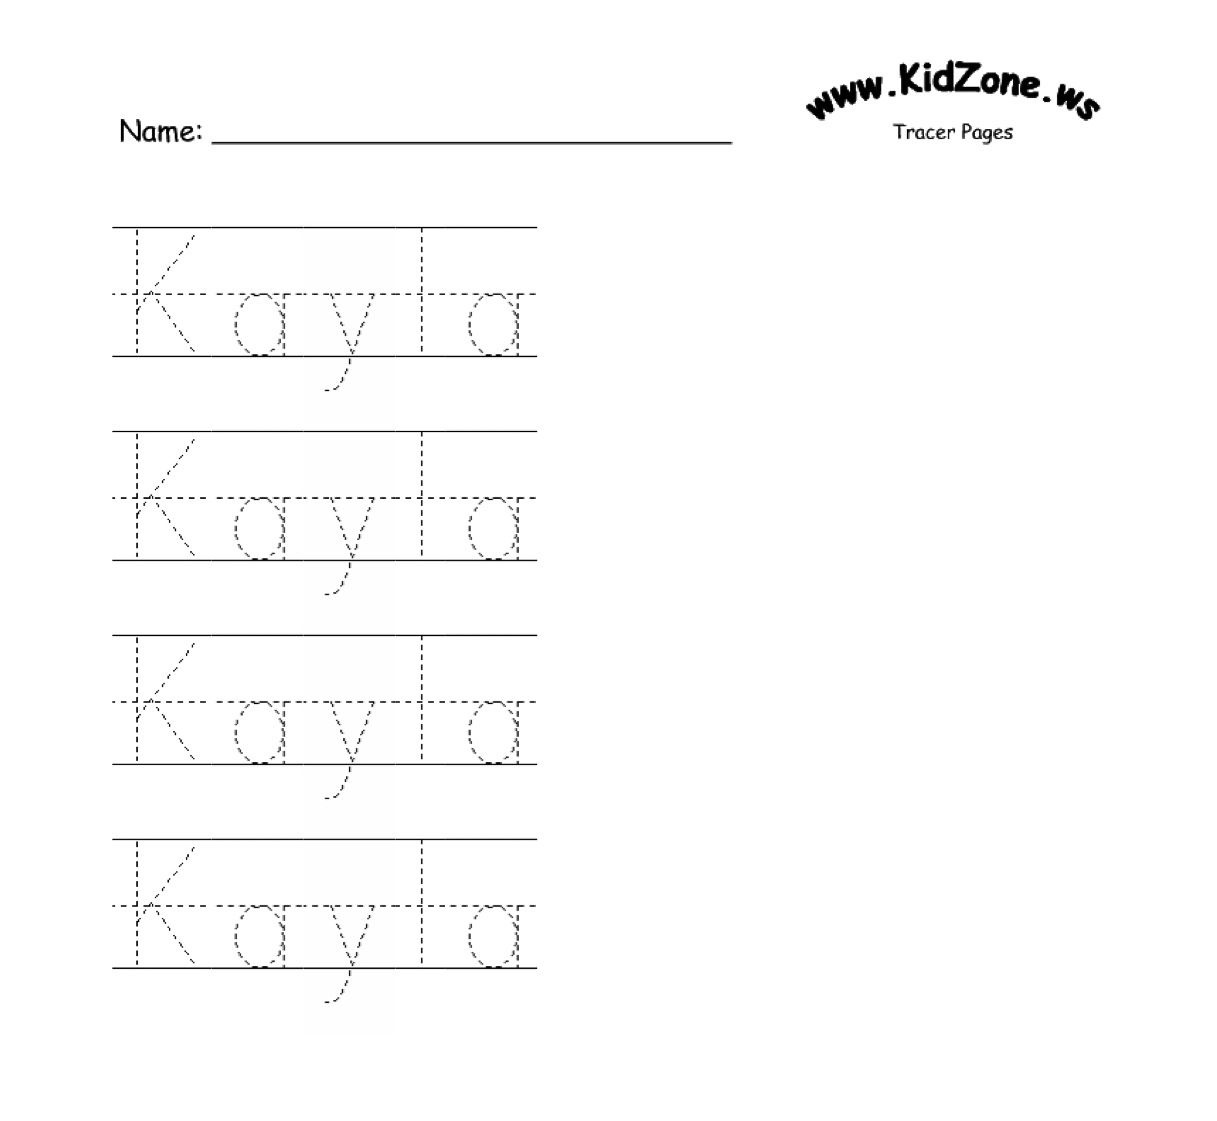 Custom Name Tracer Pages | Name Recog | Preschool Names, Preschool - Free Printable Preschool Name Tracer Pages